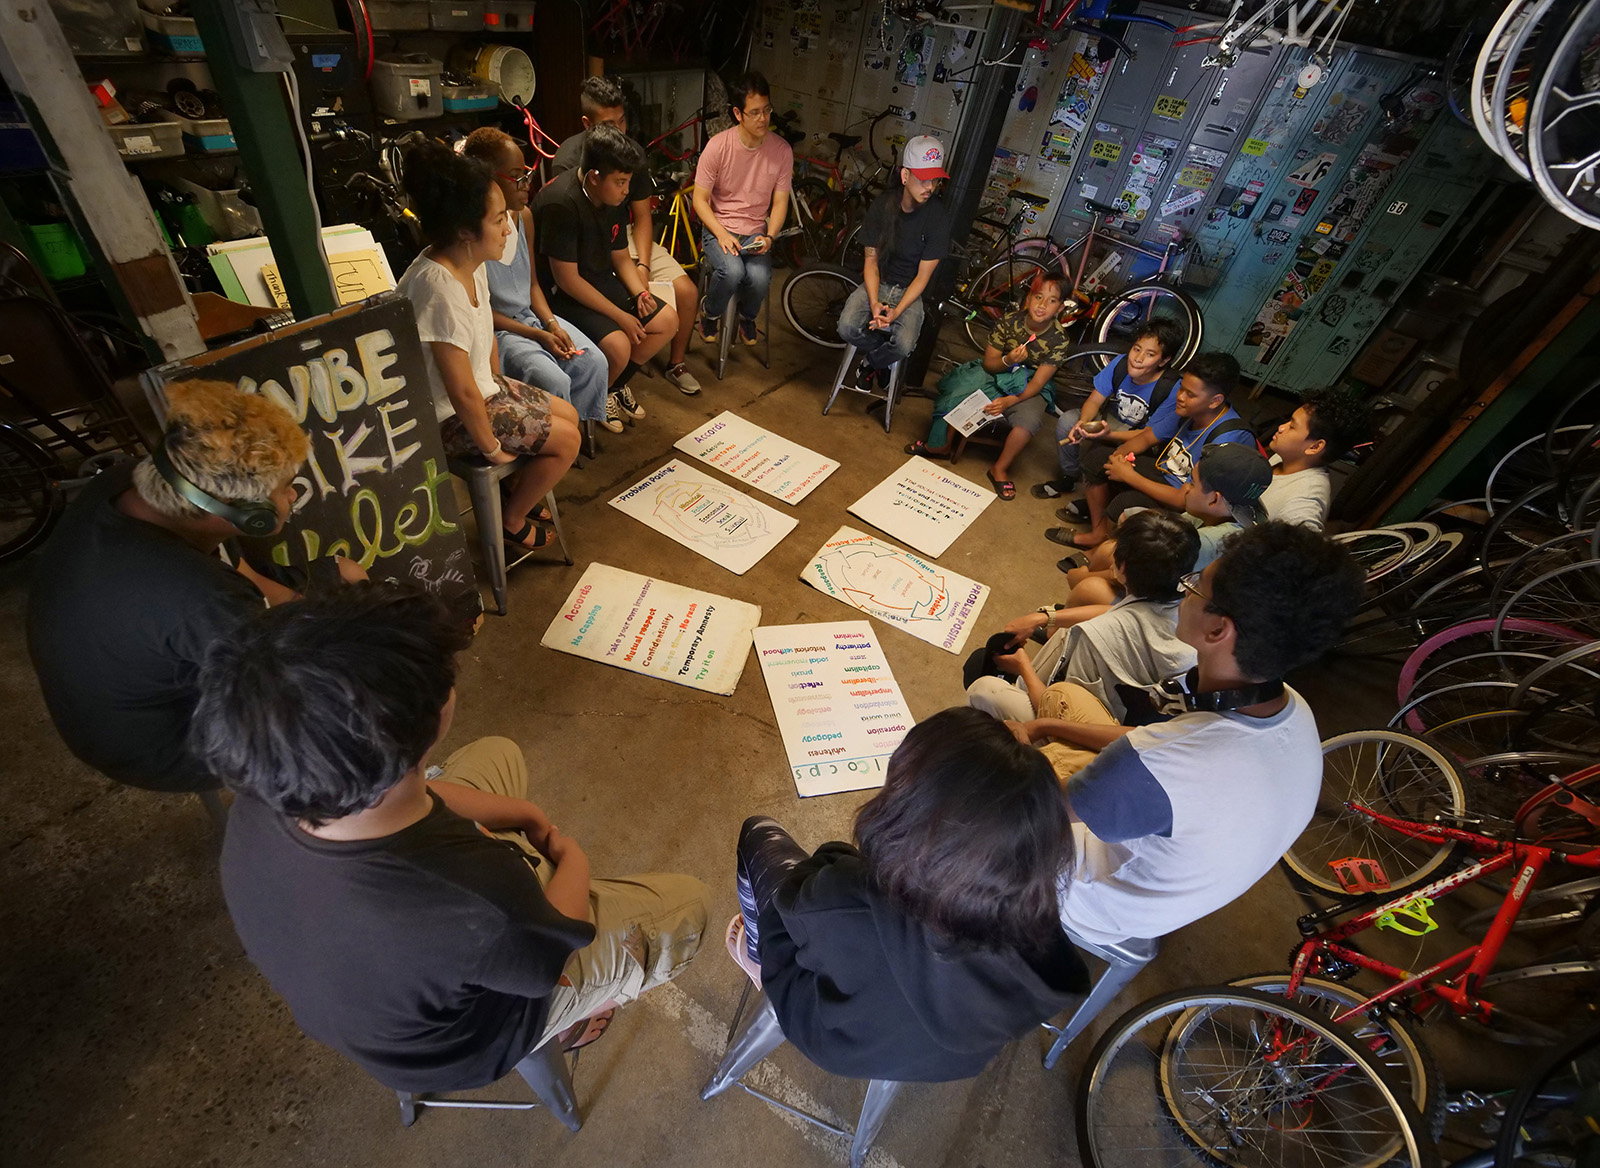 <p>Another program allows people, mostly youths, to learn bicycle maintenance skills and put in sweat equity to get their own bikes. The Kalihi Valley Instructional Bike Exchange begins each day with a circle to help build strong relationships among participants and mentors.</p>